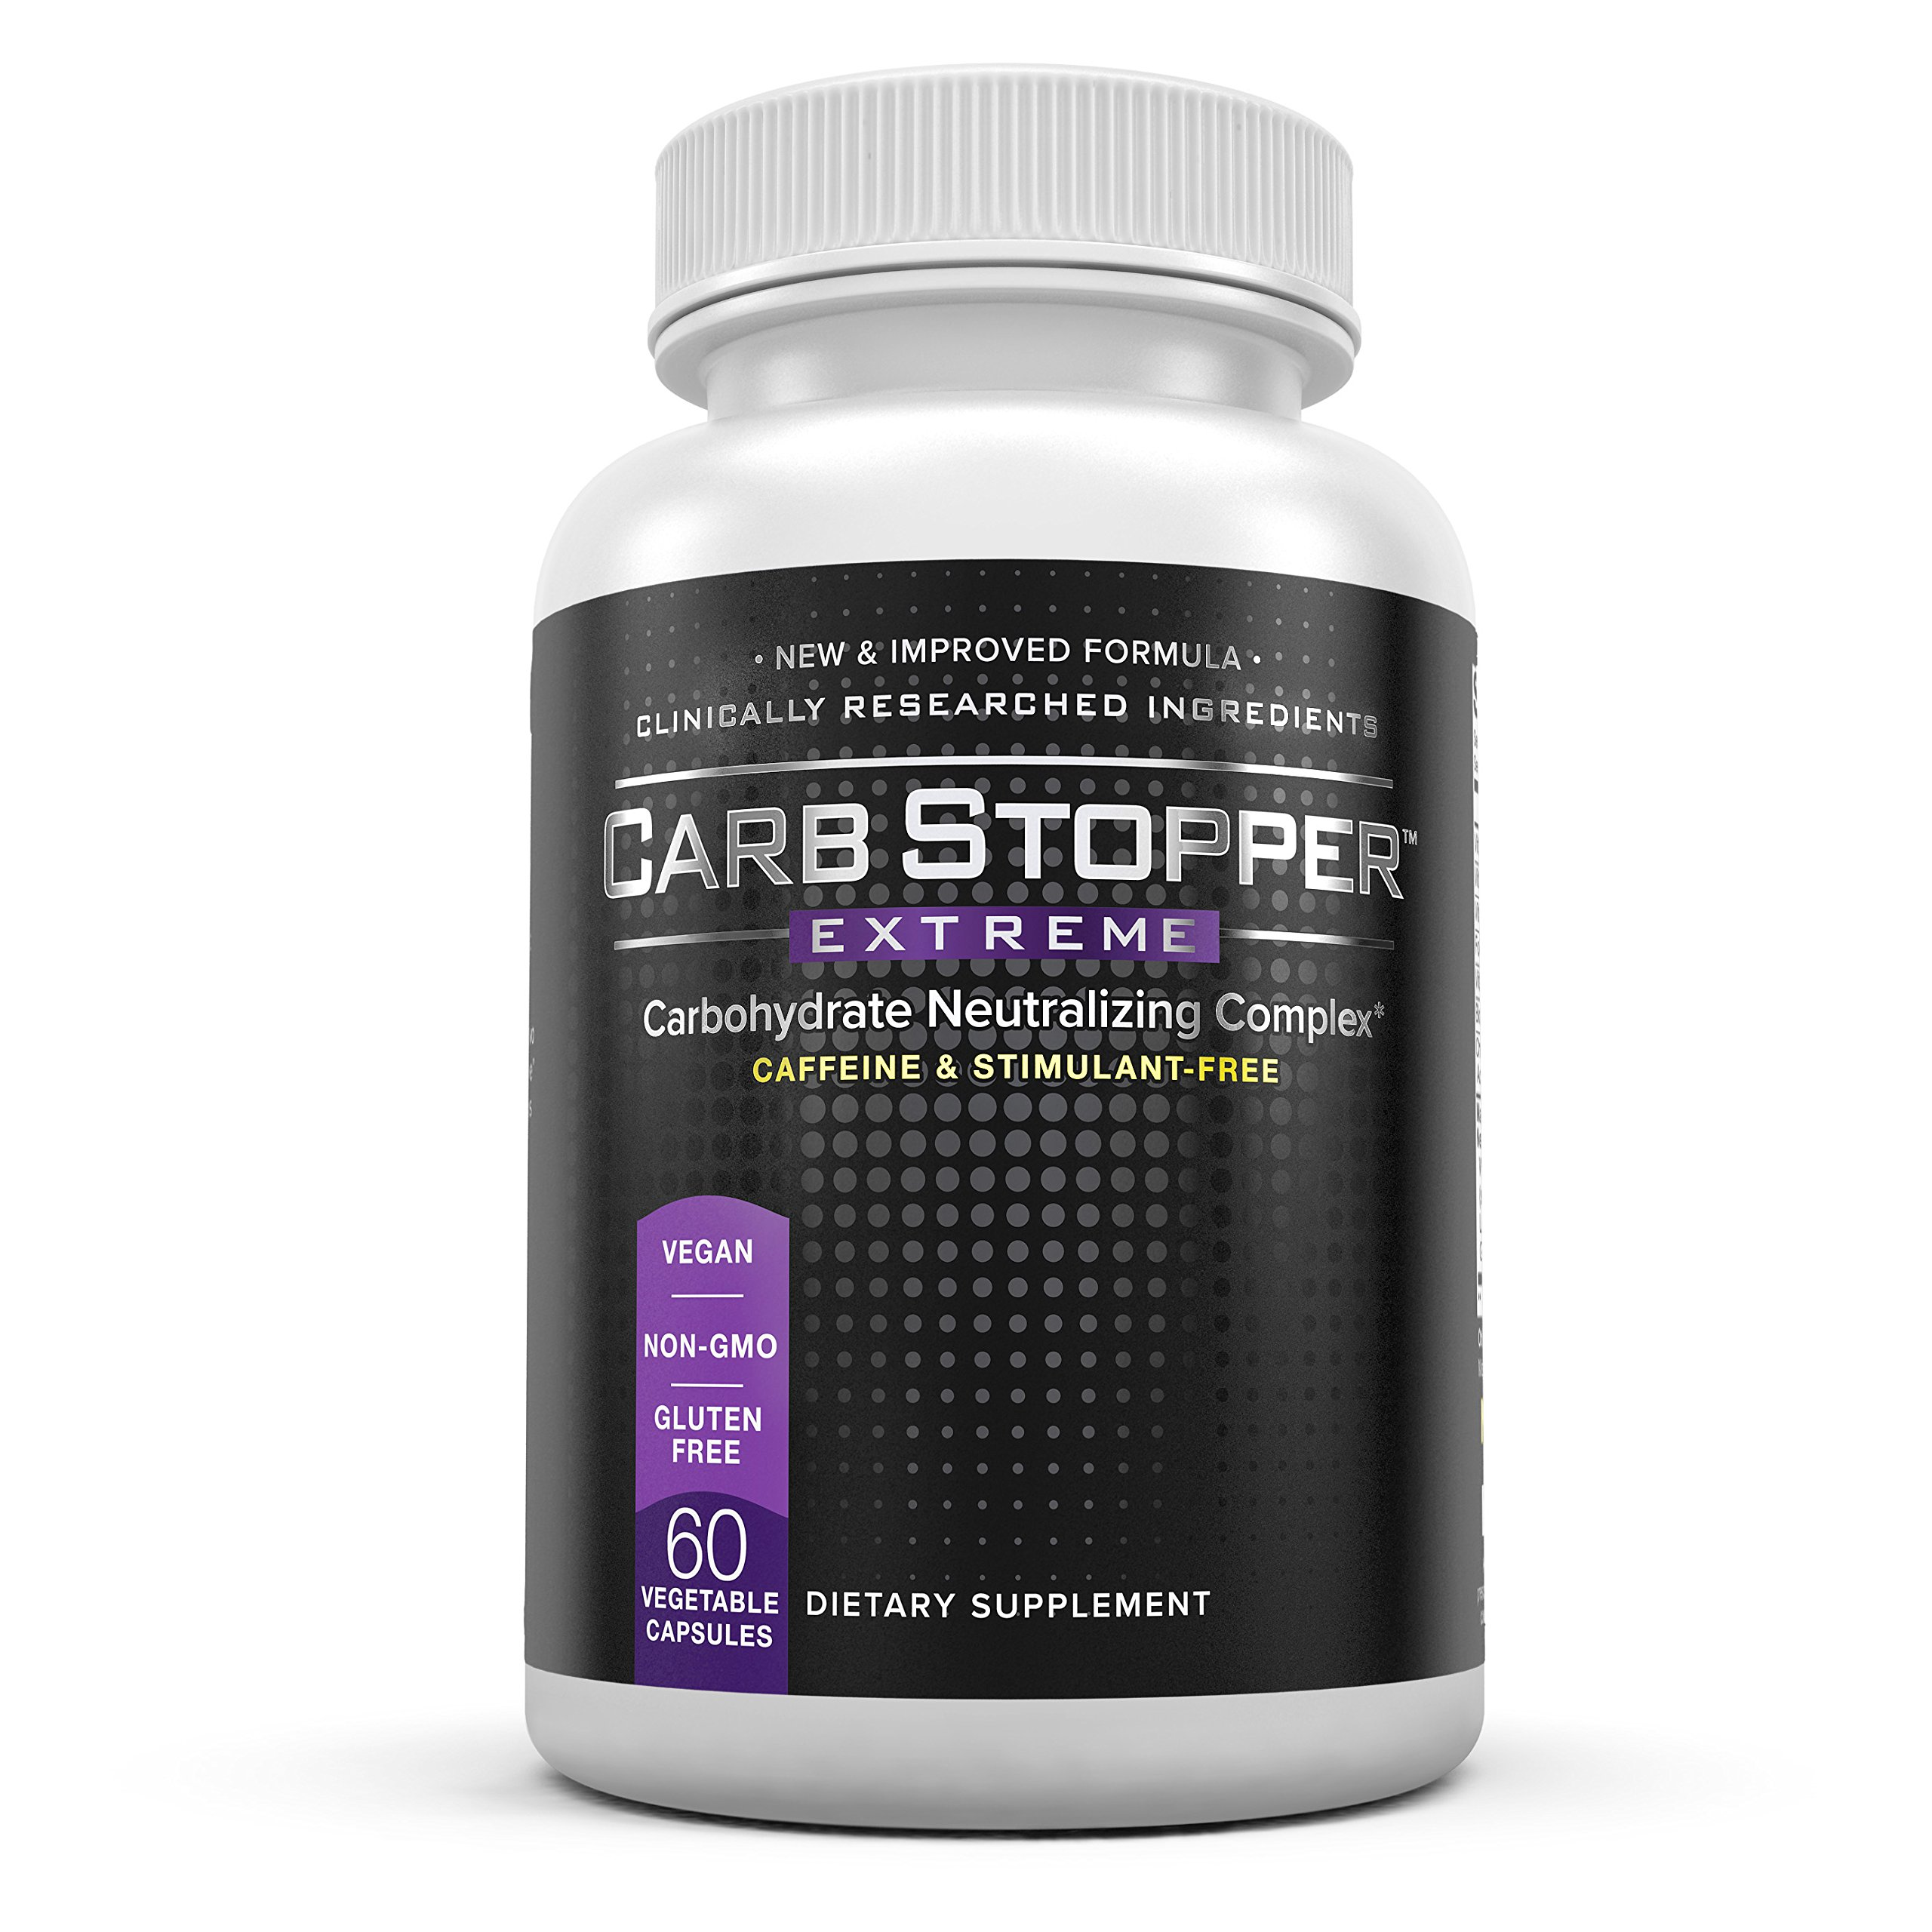 CARB STOPPER EXTREME - Maximum Strength Carbohydrate & Starch Blocker Weight Loss Diet Pills with White Kidney Bean Extract by Carb Stopper Extreme 60 caps by Carb Stopper Extreme Fat Burning Carb Block Diet Pills